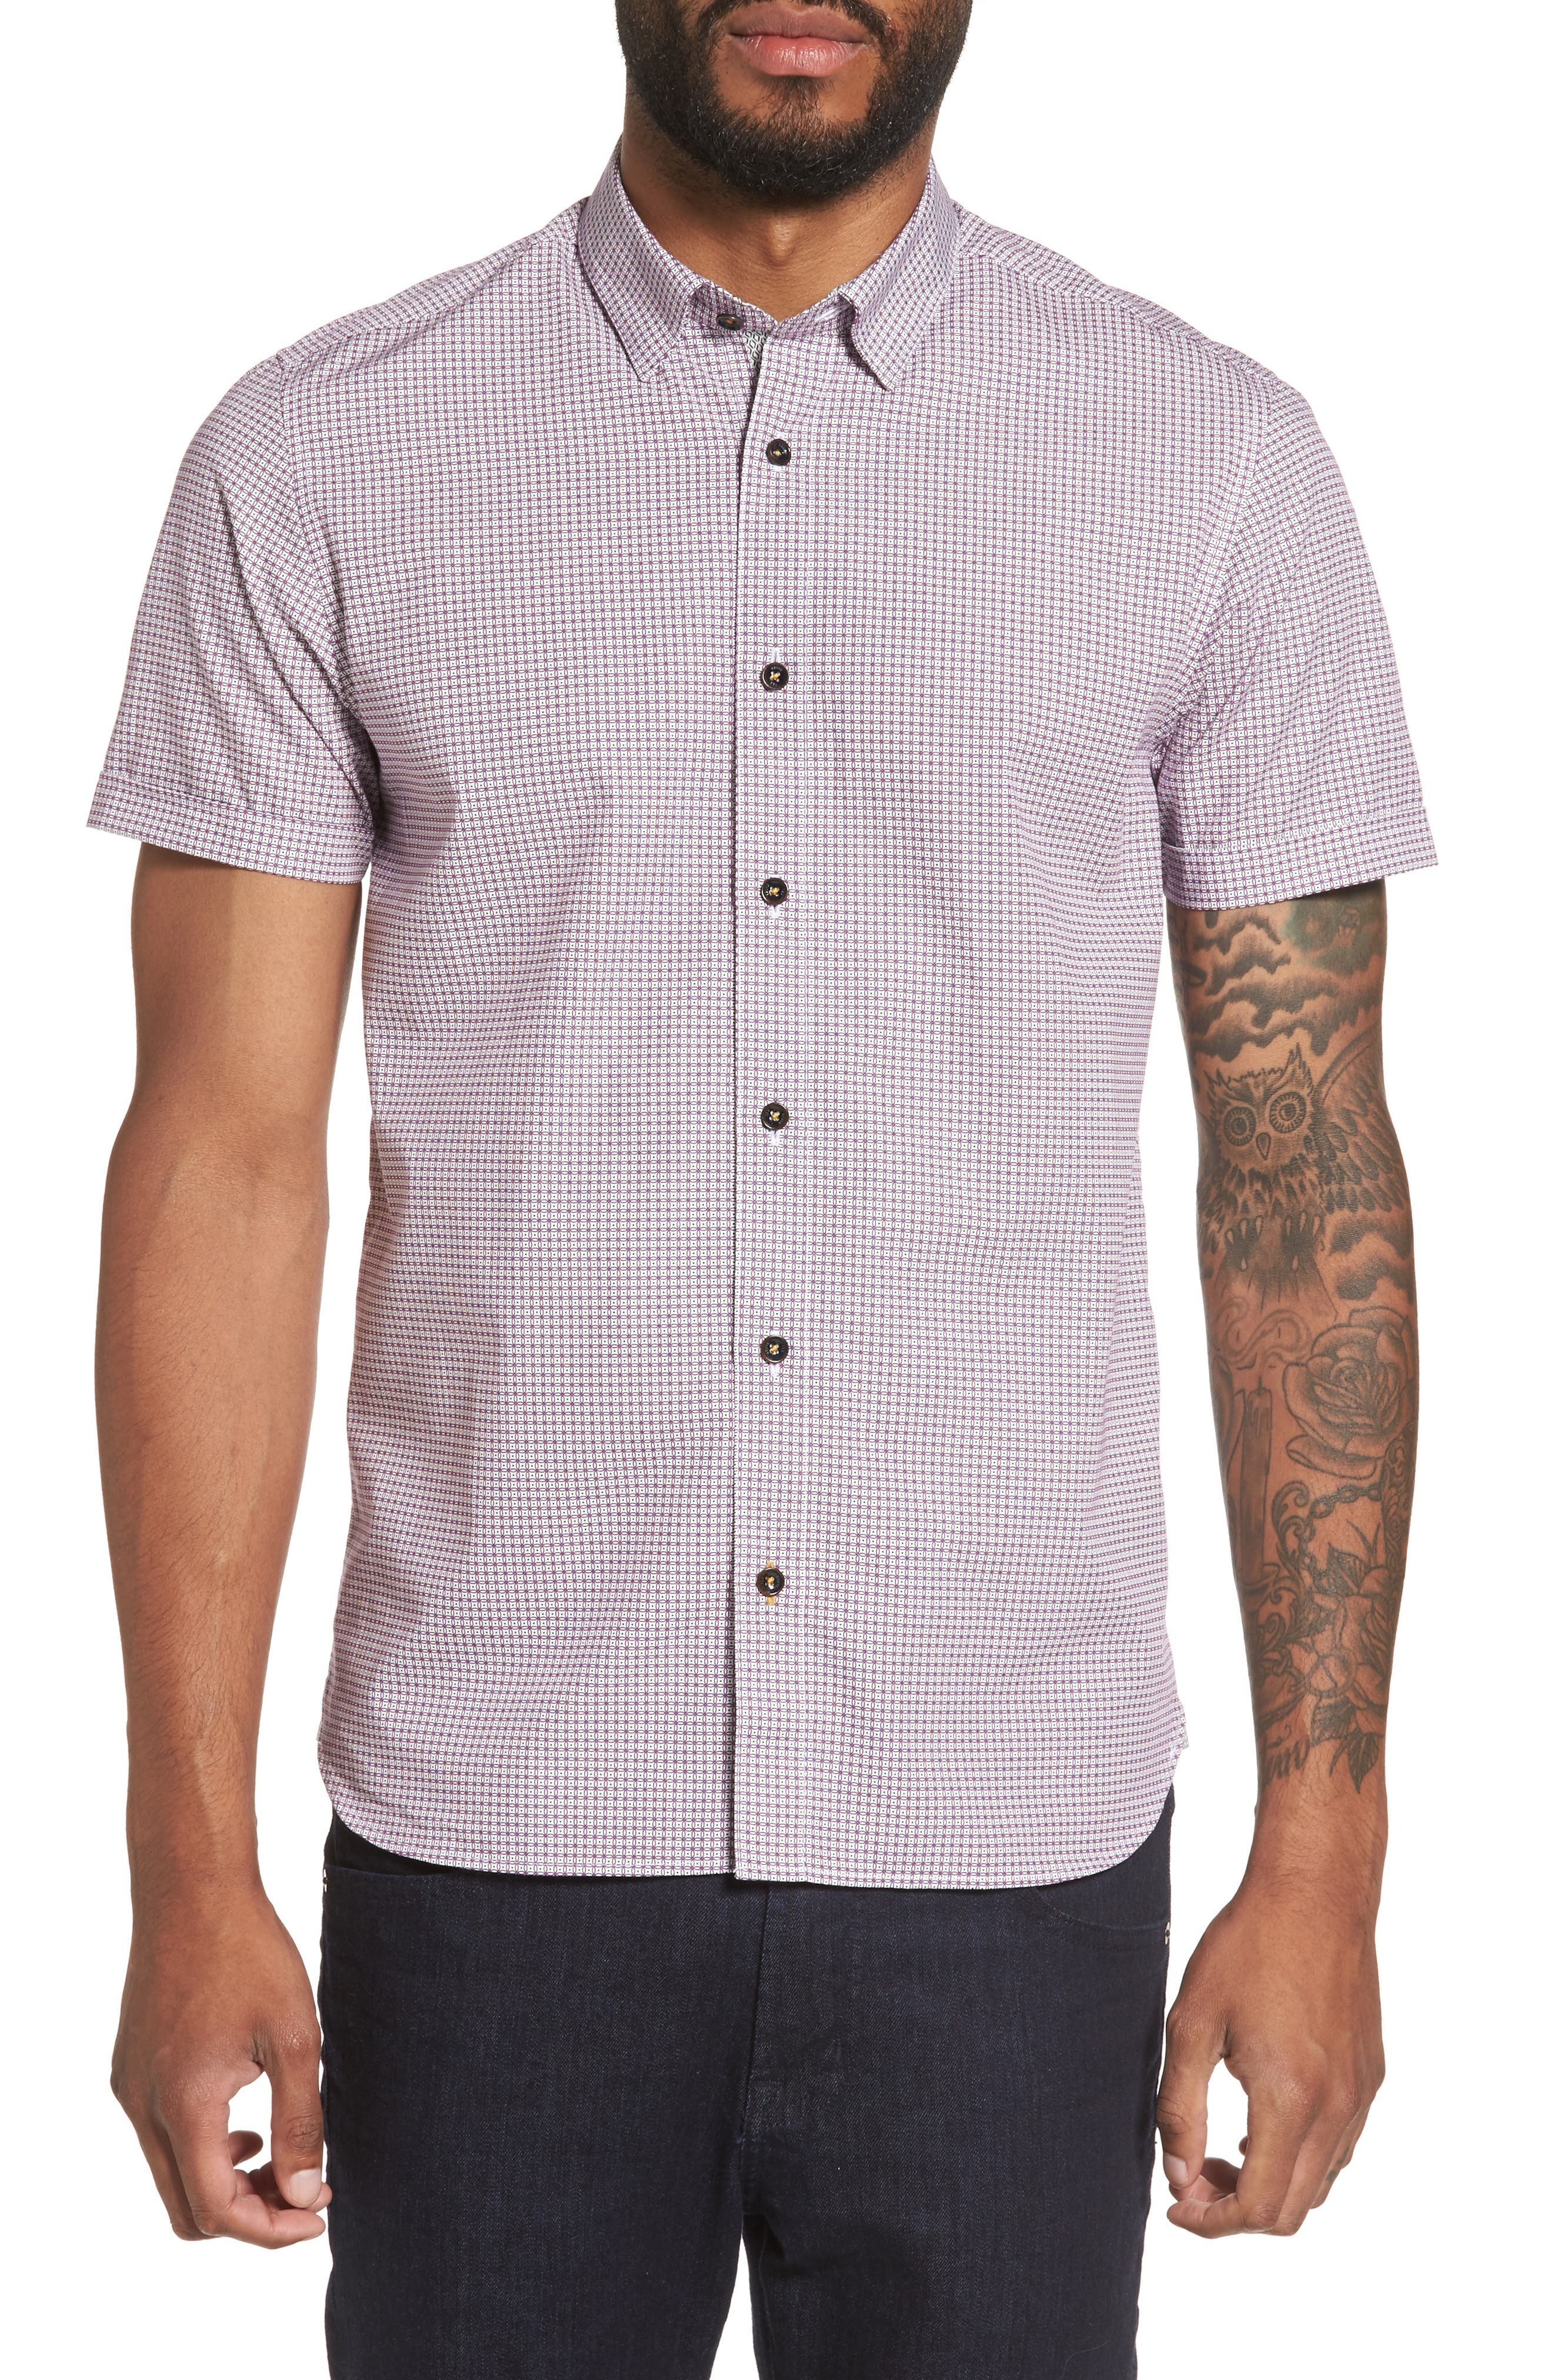 Alternate Image 1 Selected - Ted Baker London Tennent Trim Fit Microprint Woven Shirt